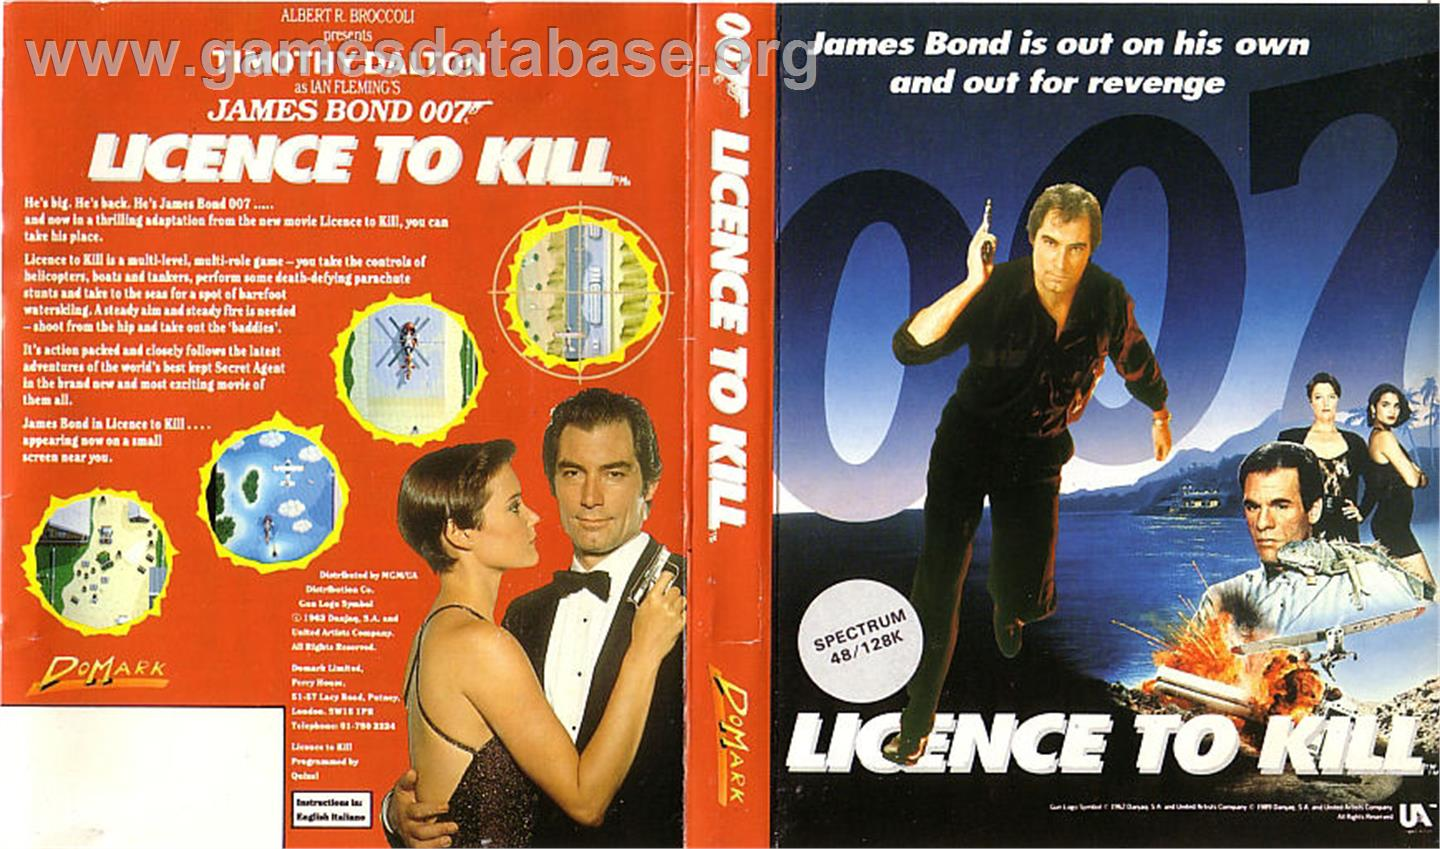 007: Licence to Kill - Sinclair ZX Spectrum - Artwork - Box